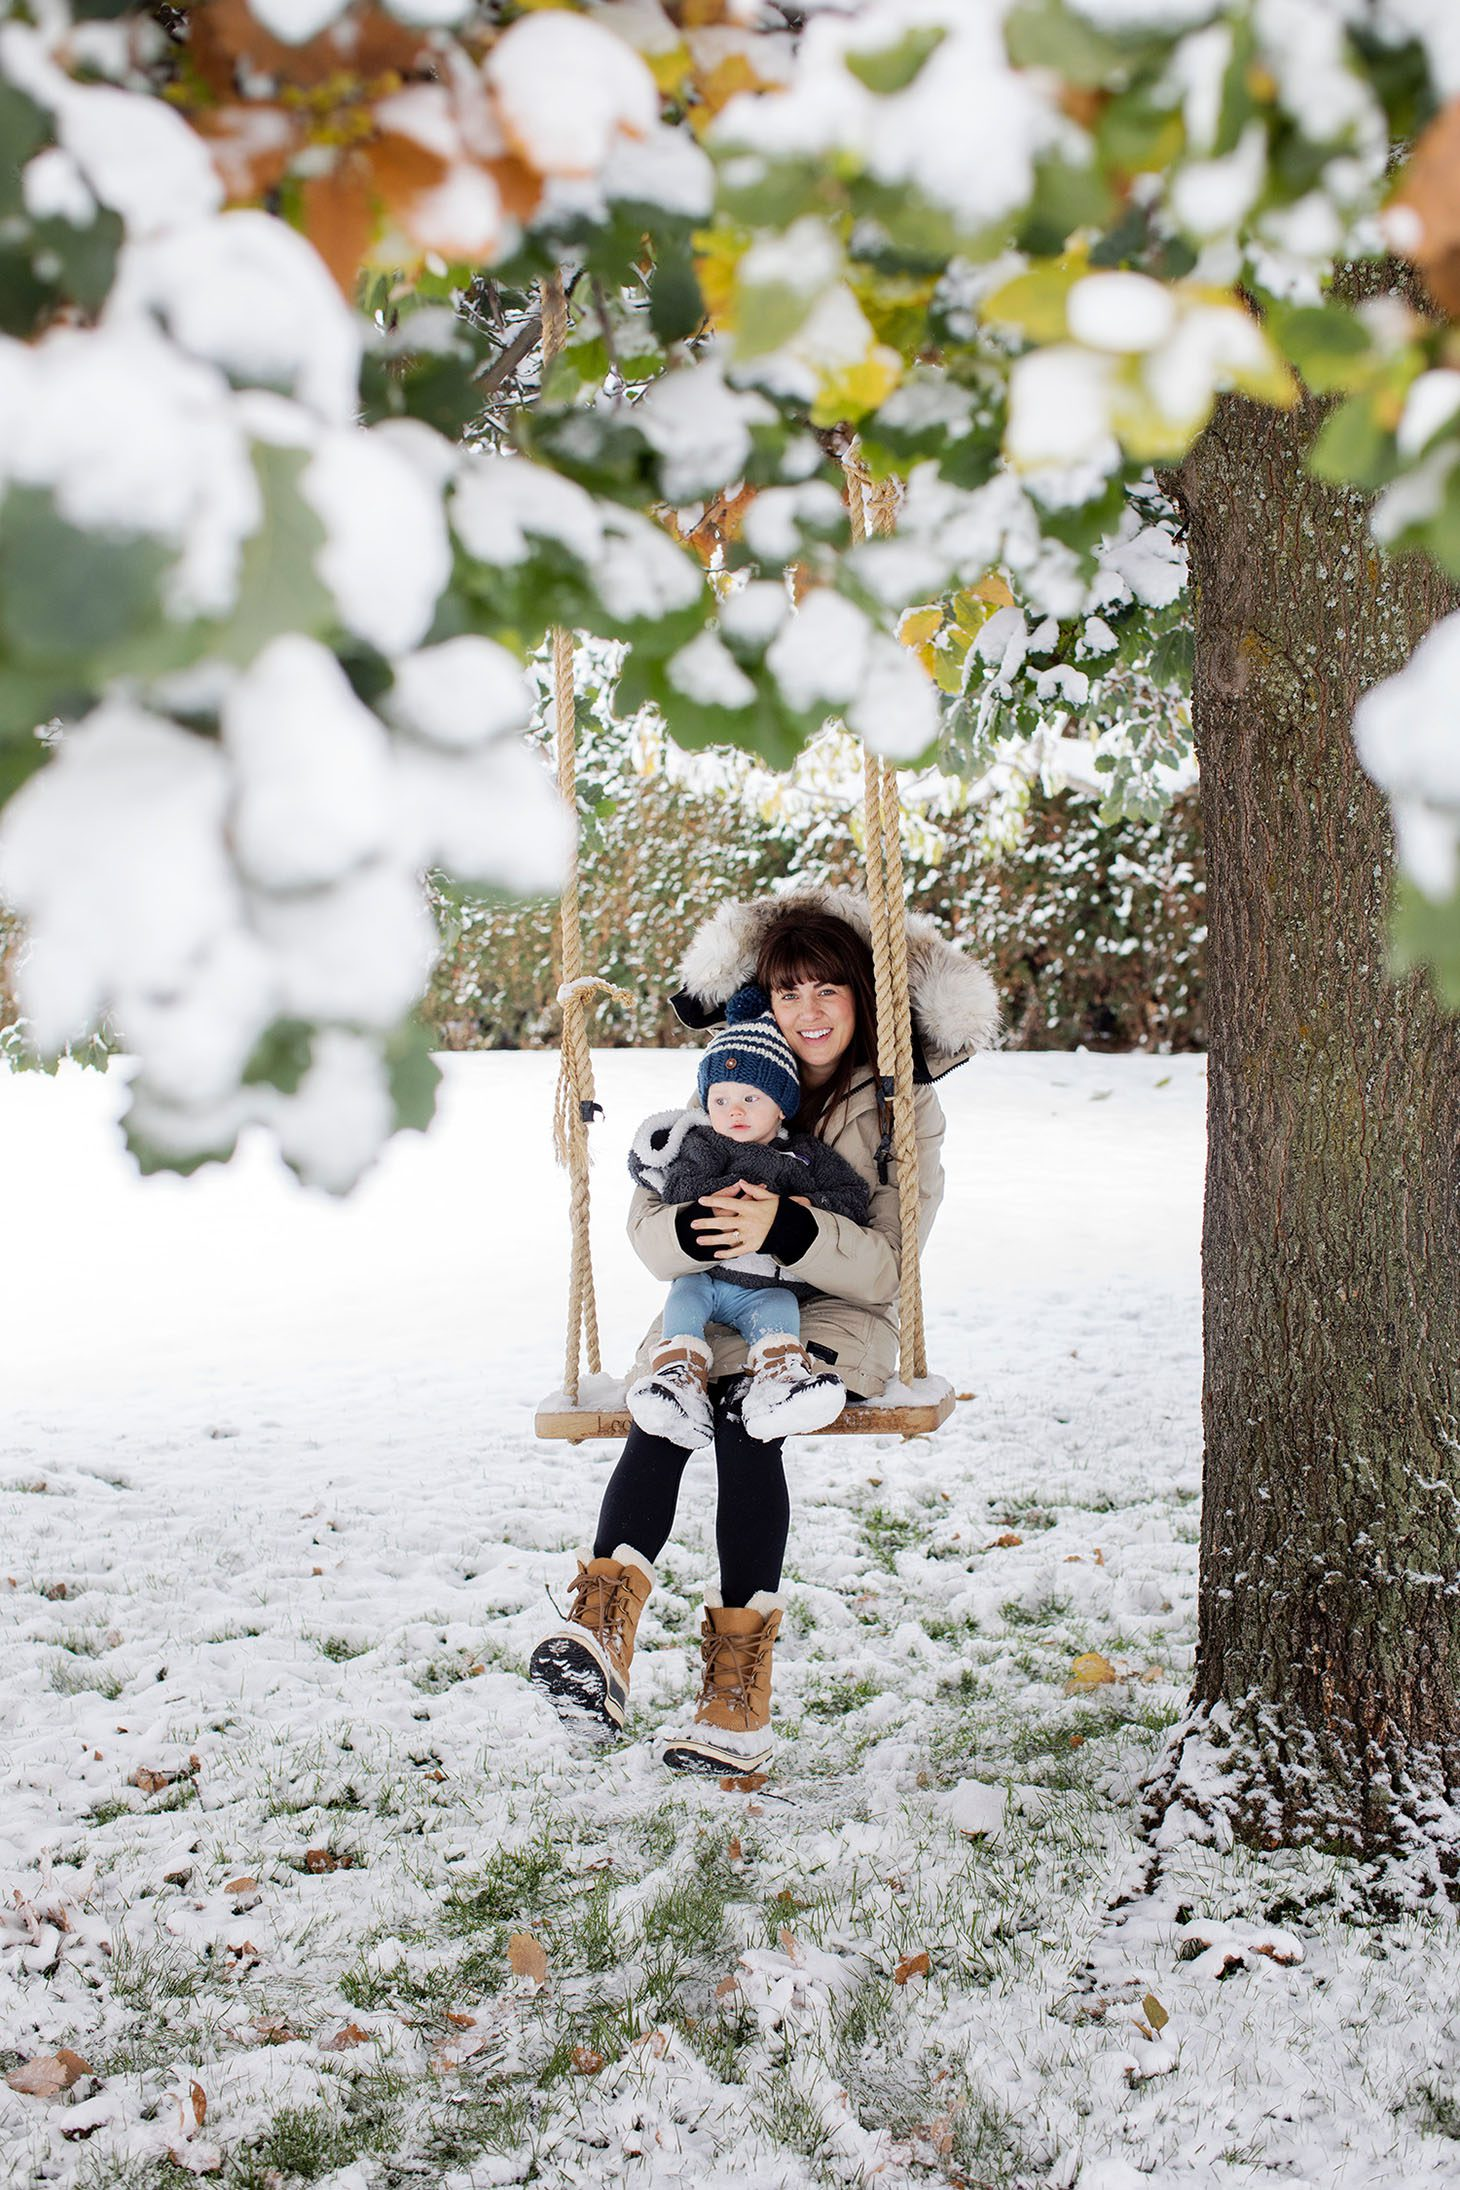 Jillian Harris 12 Days of Christmas Giveaways